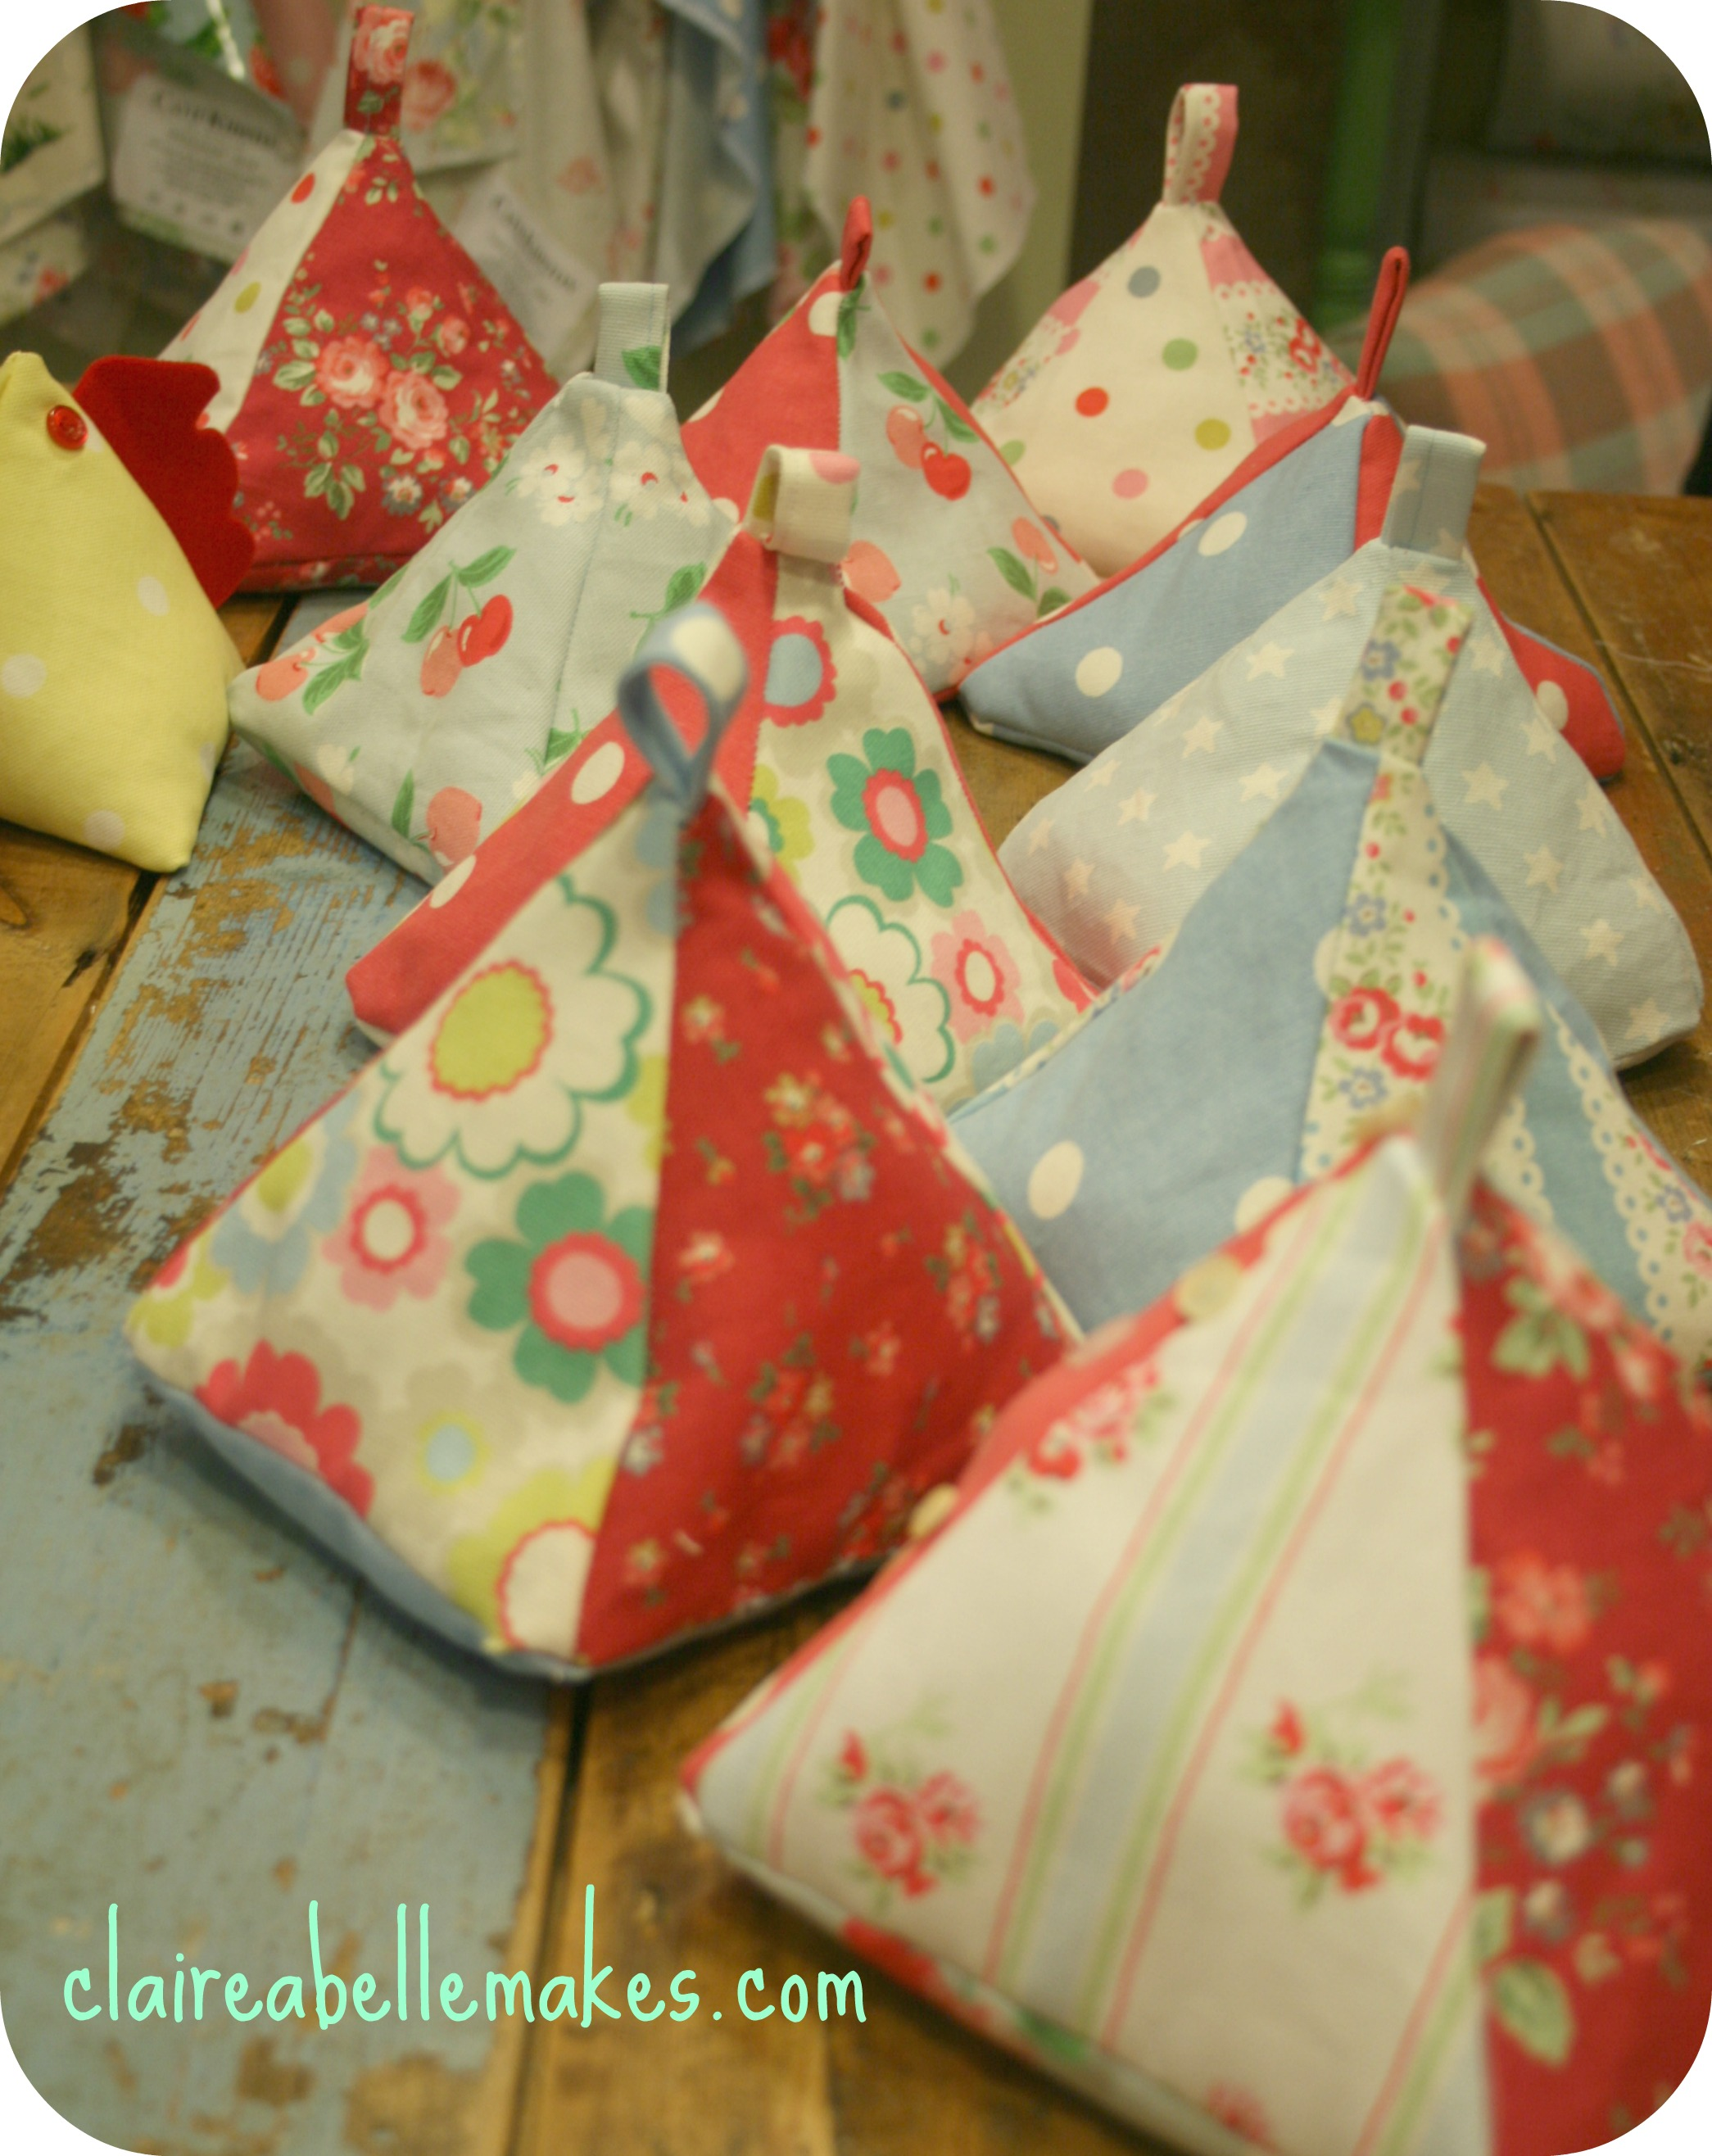 Fabric Door Stopper Fabric Doorstop Template And Cath Kidston Fabric Doorstop On